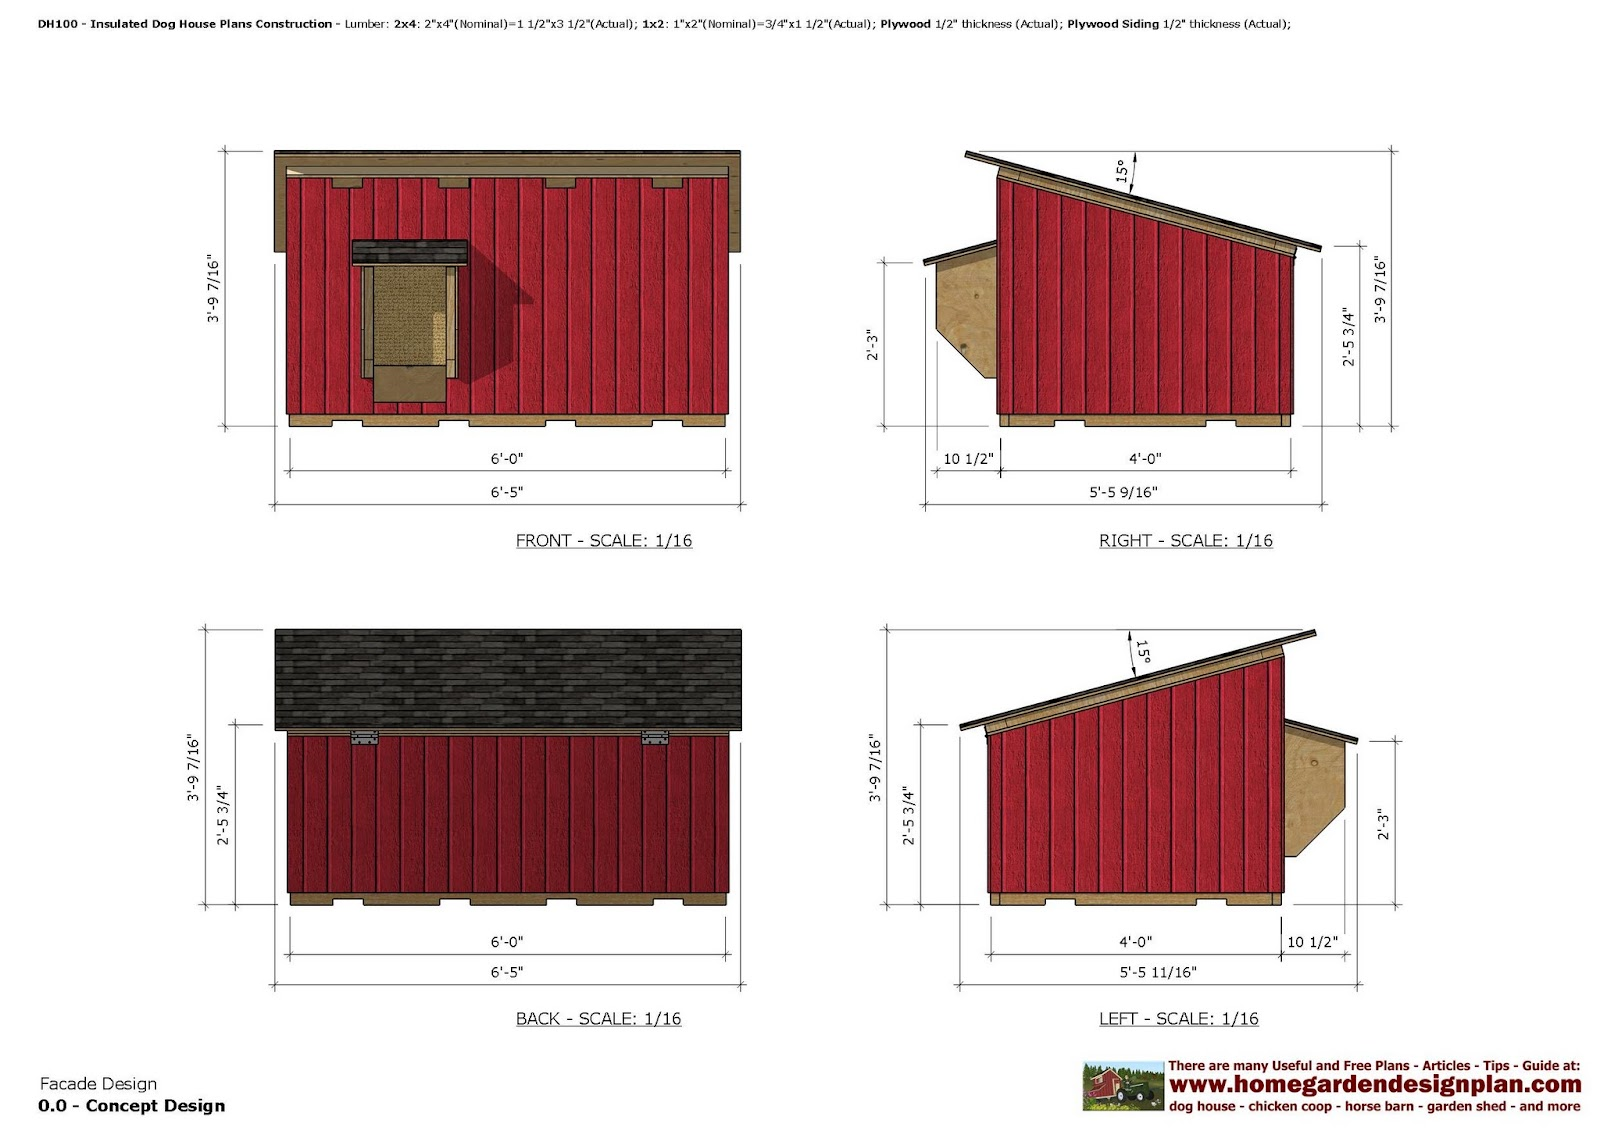 home garden plans dh100 insulated dog house plans dog house design how to build an. Black Bedroom Furniture Sets. Home Design Ideas